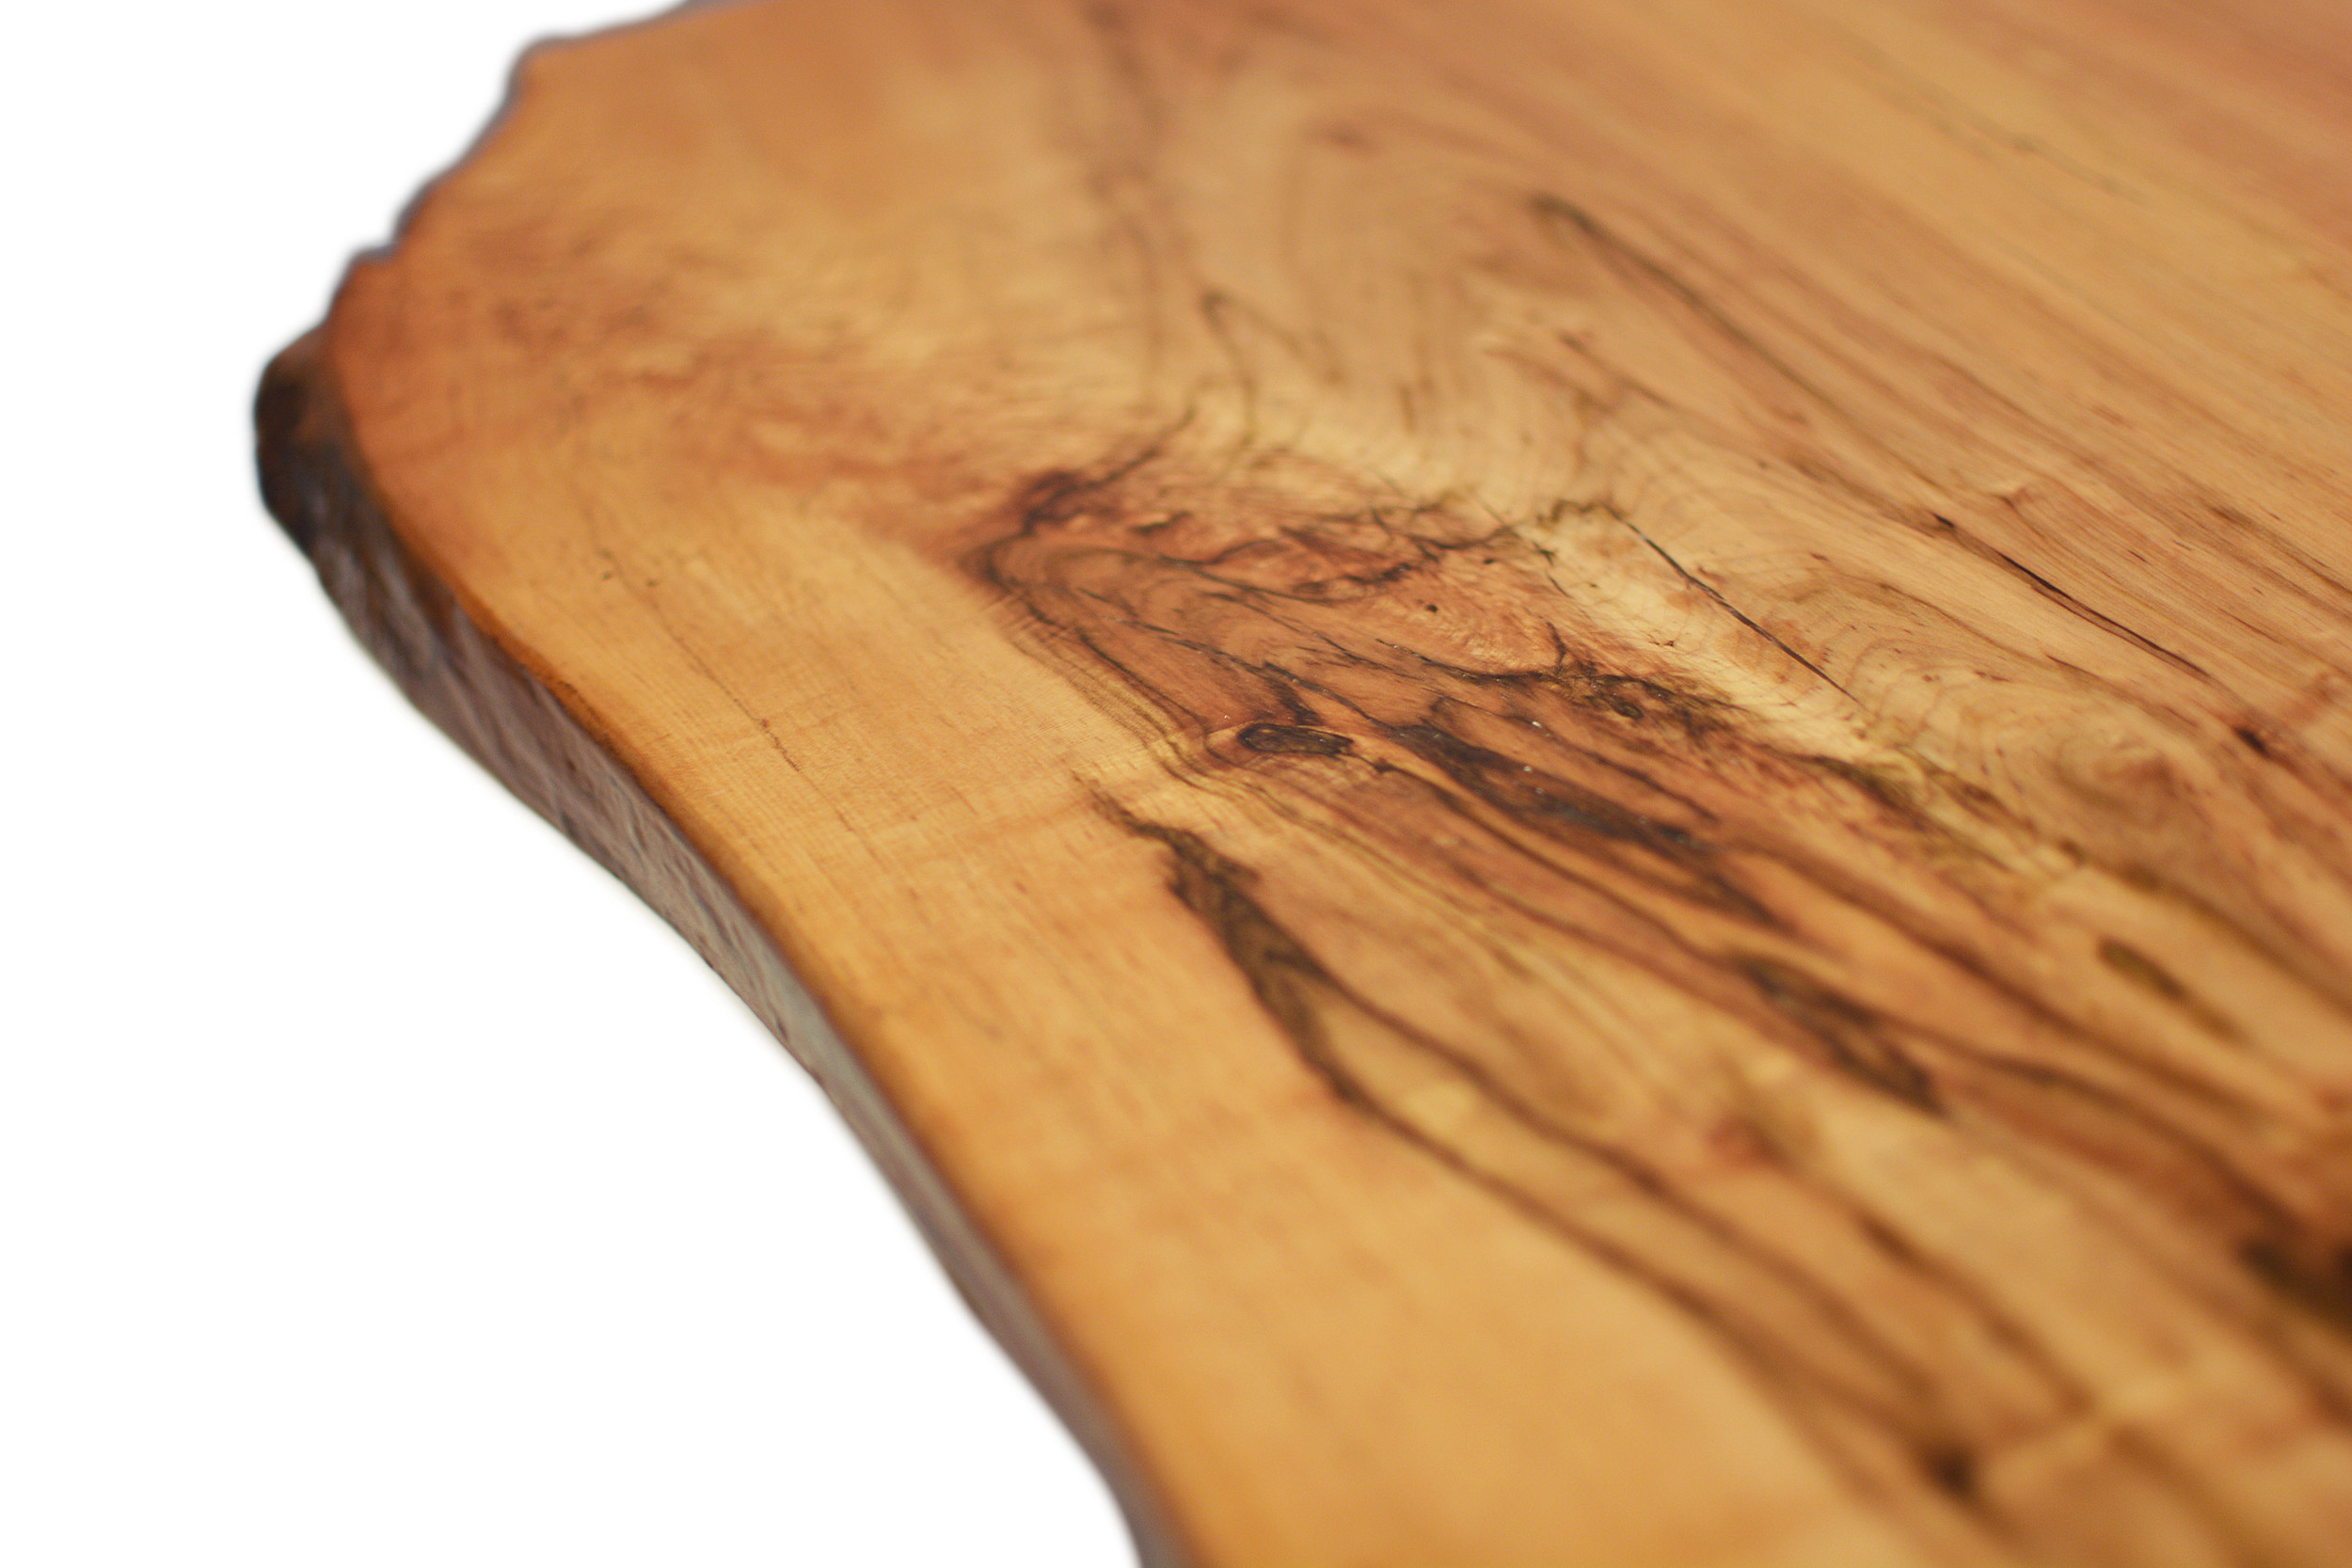 Etz & Steel Kona Live Edge Table Close Up 2.JPG